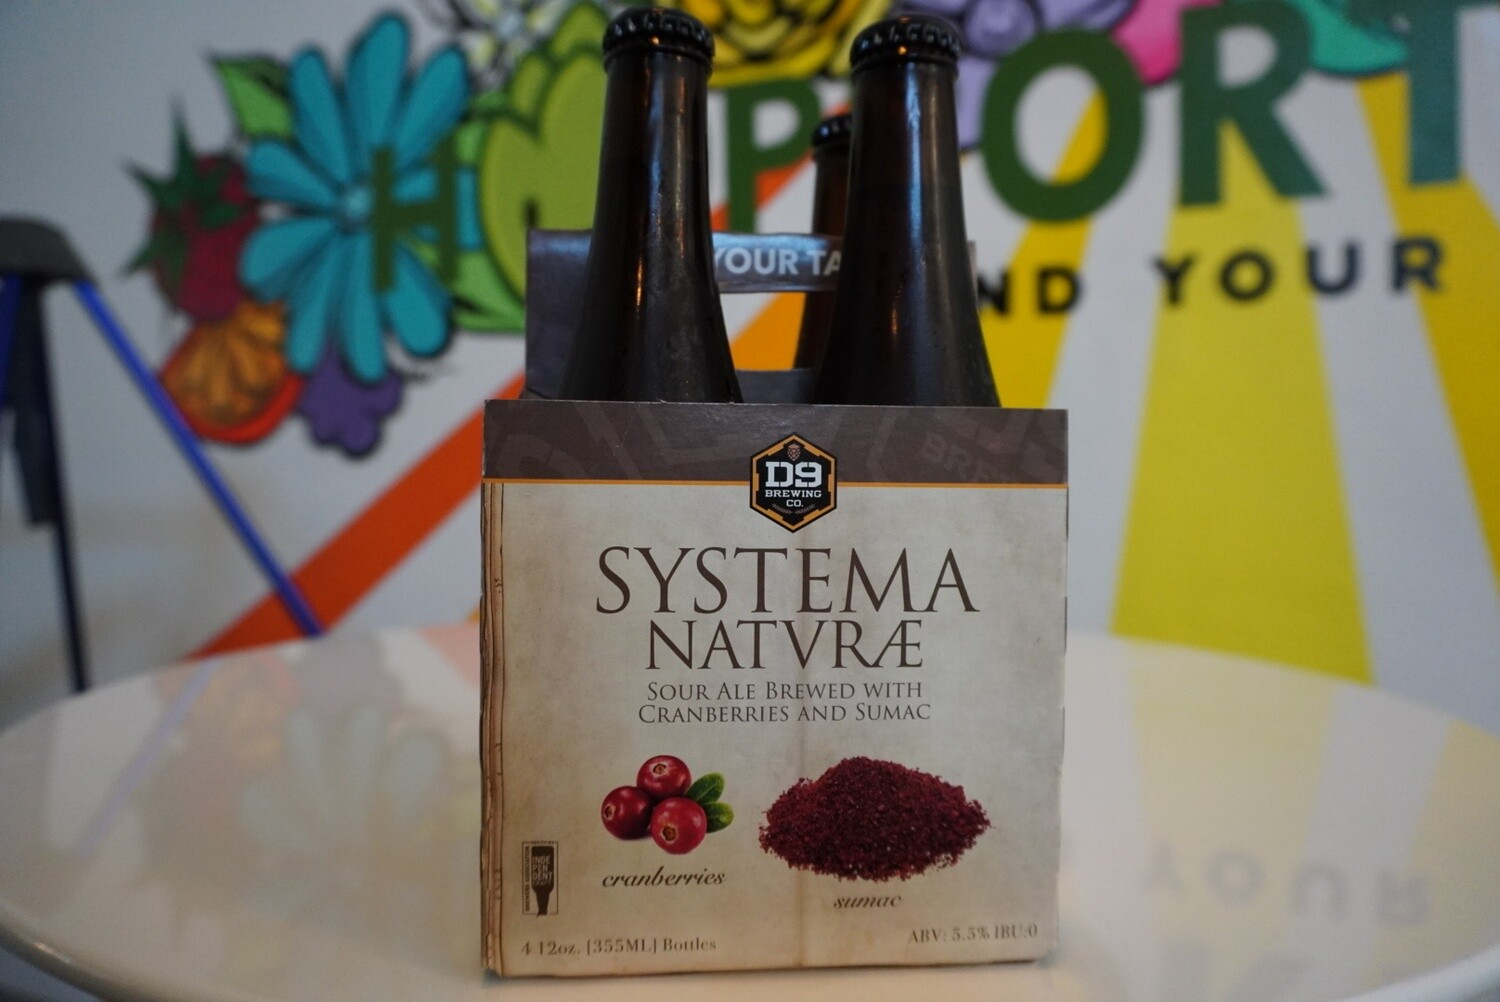 D9 - Systema Natvrae - Sour - 5.5% ABV - 4 Pack